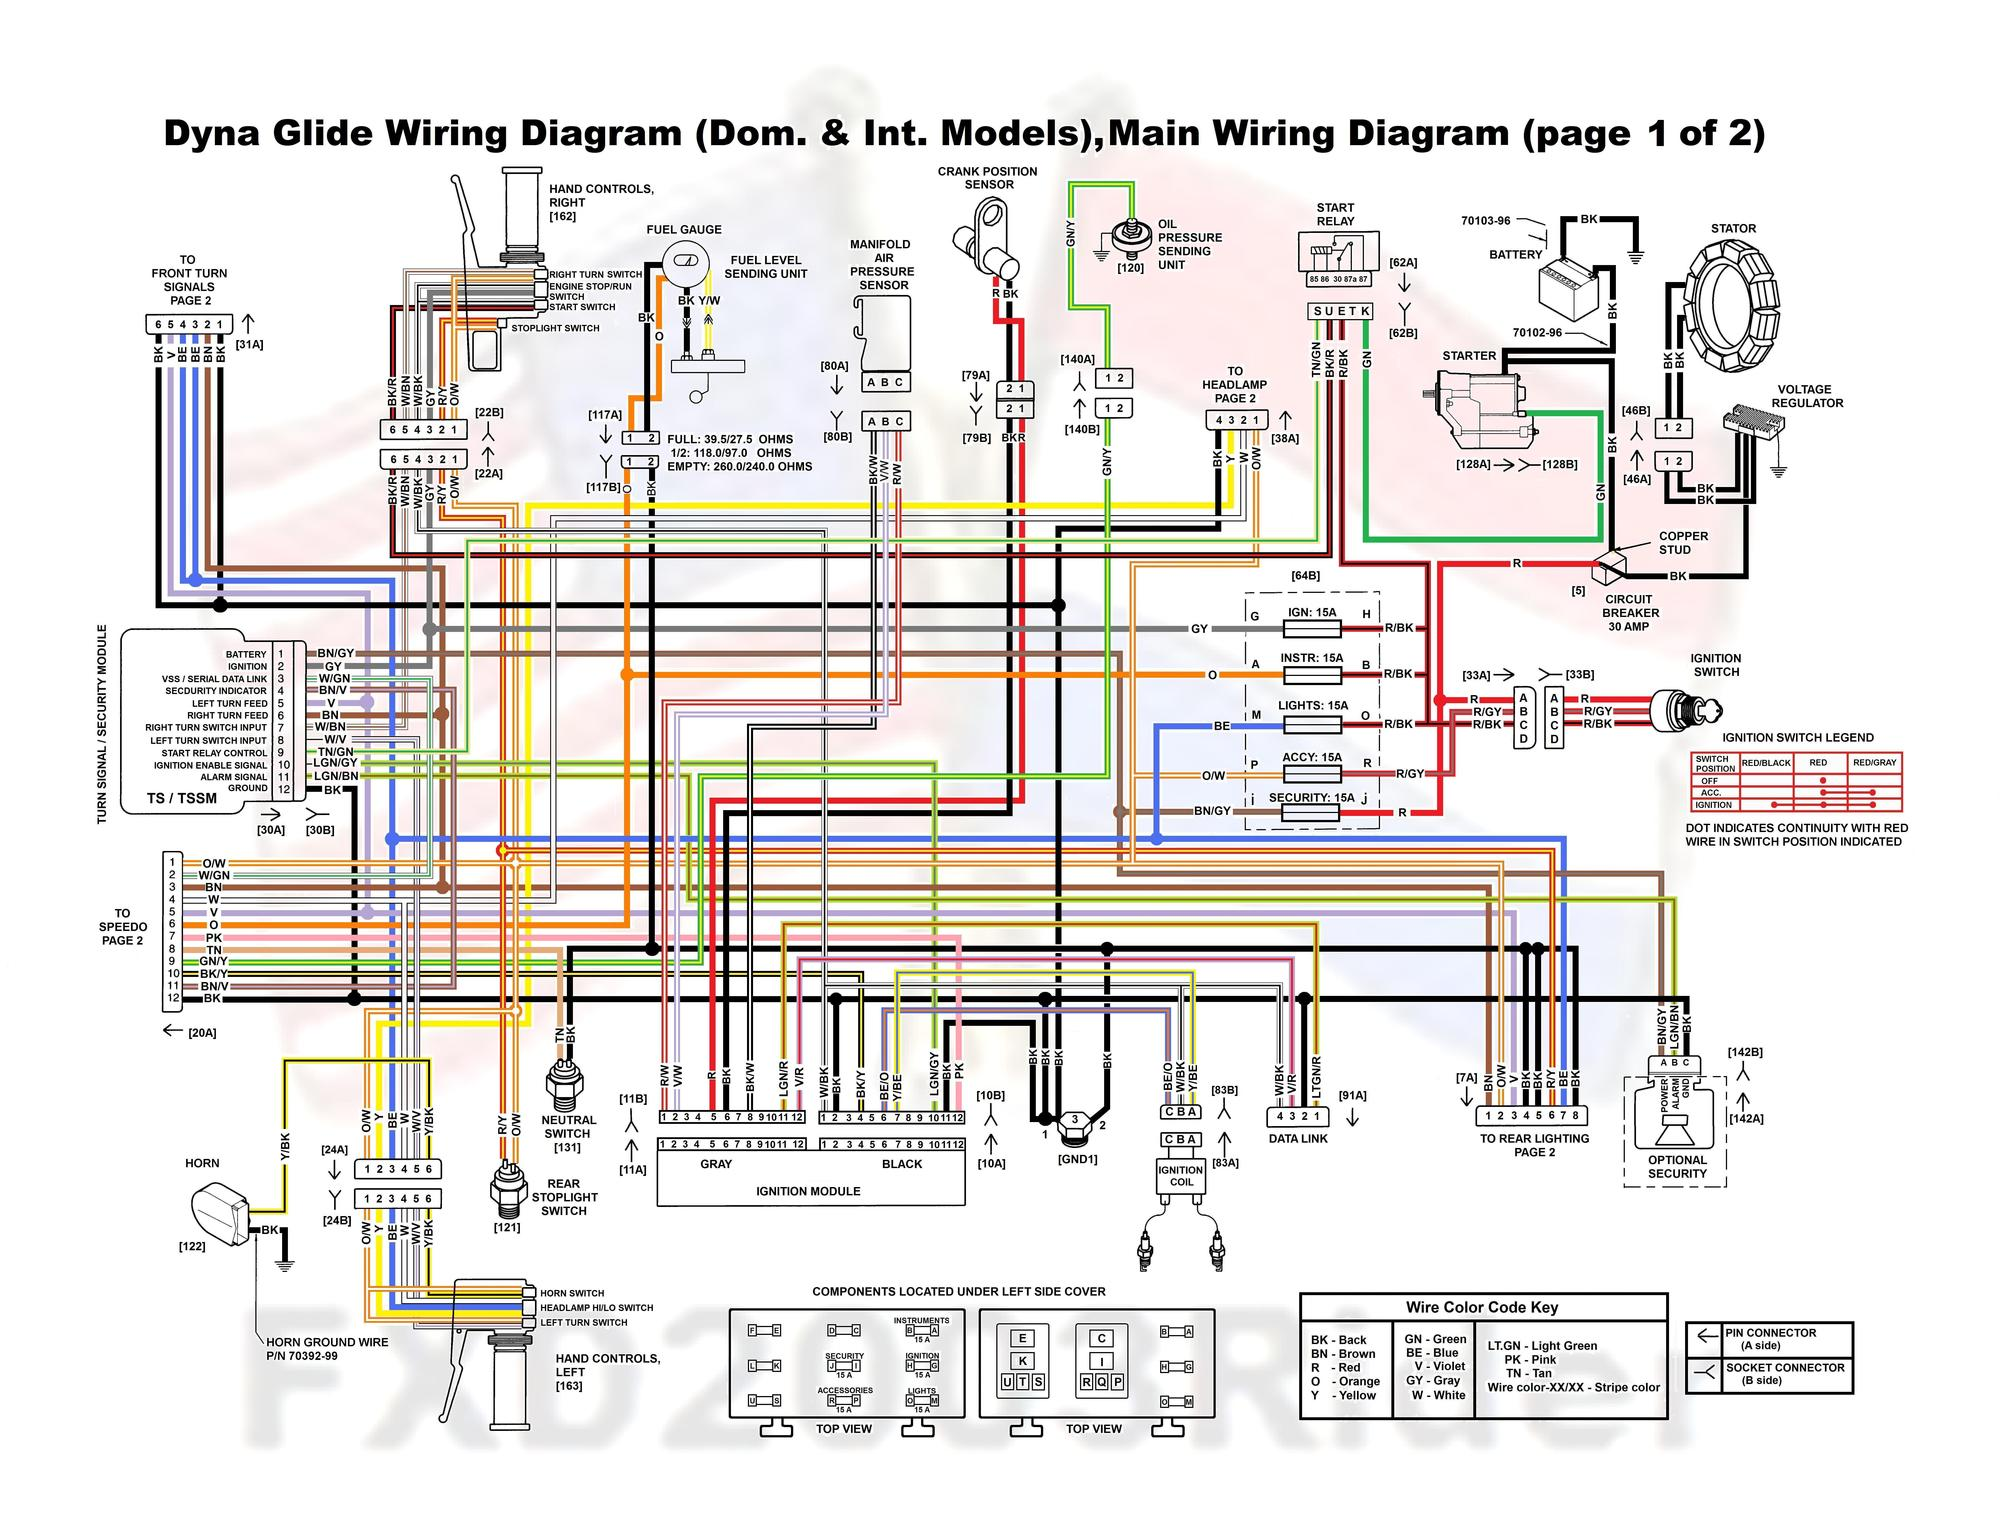 hd dyna wiring diagram 1999 simple wiring schema rh 34 aspire atlantis de victory motorcycle wiring diagram victory magnum wiring diagram [ 2000 x 1522 Pixel ]